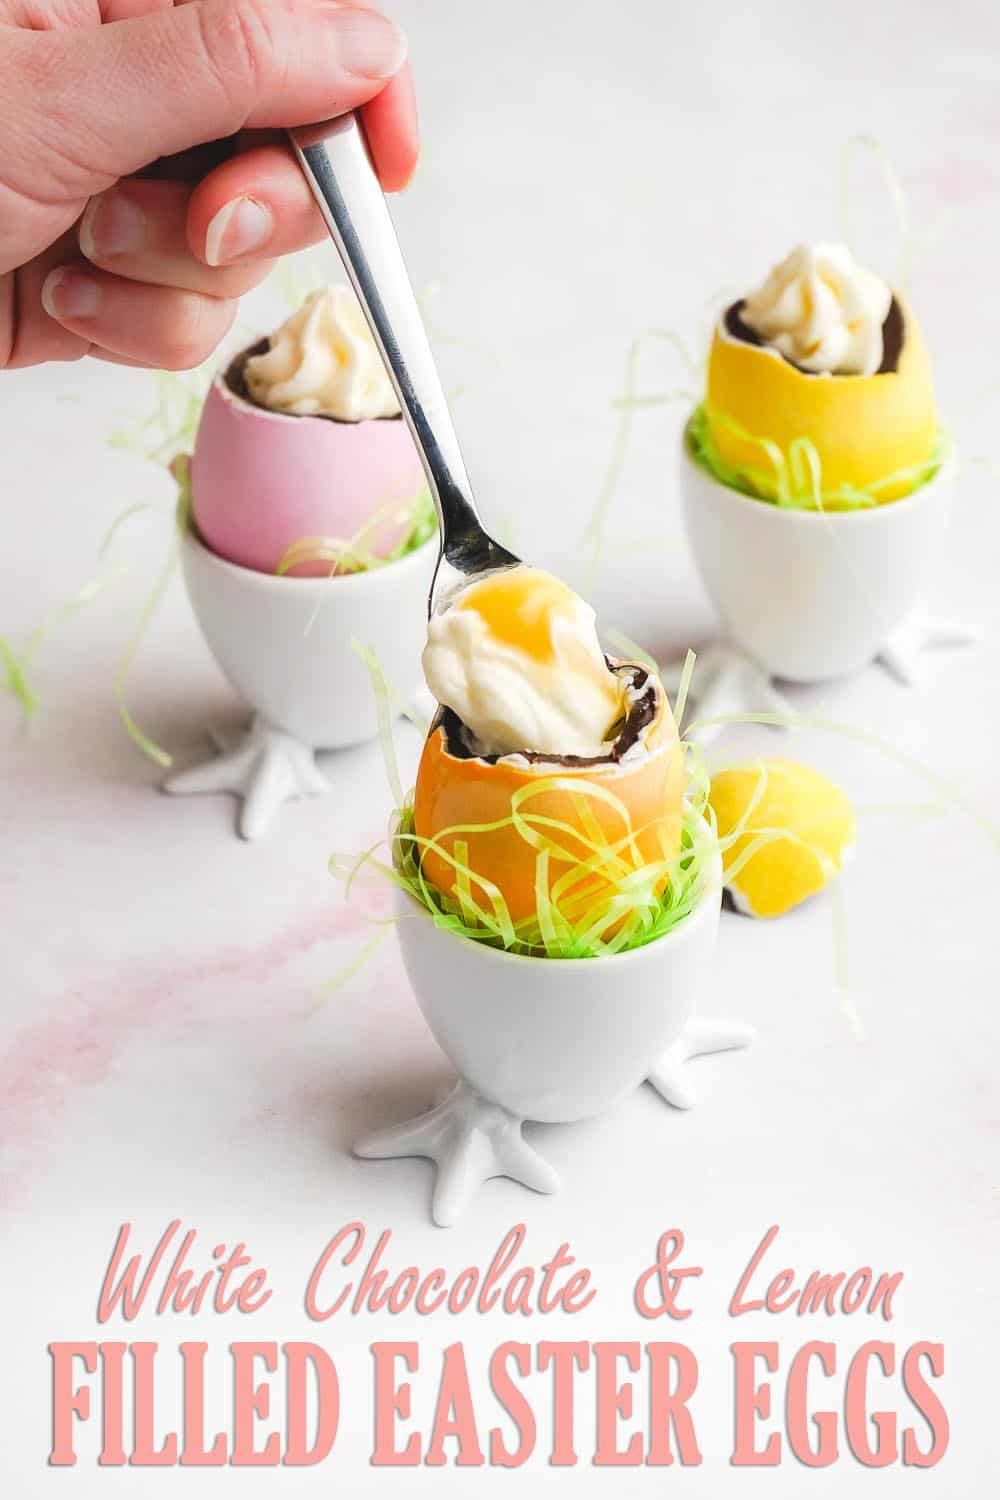 Spoon dipping into White Chocolate and Lemon Filled Easter Eggs